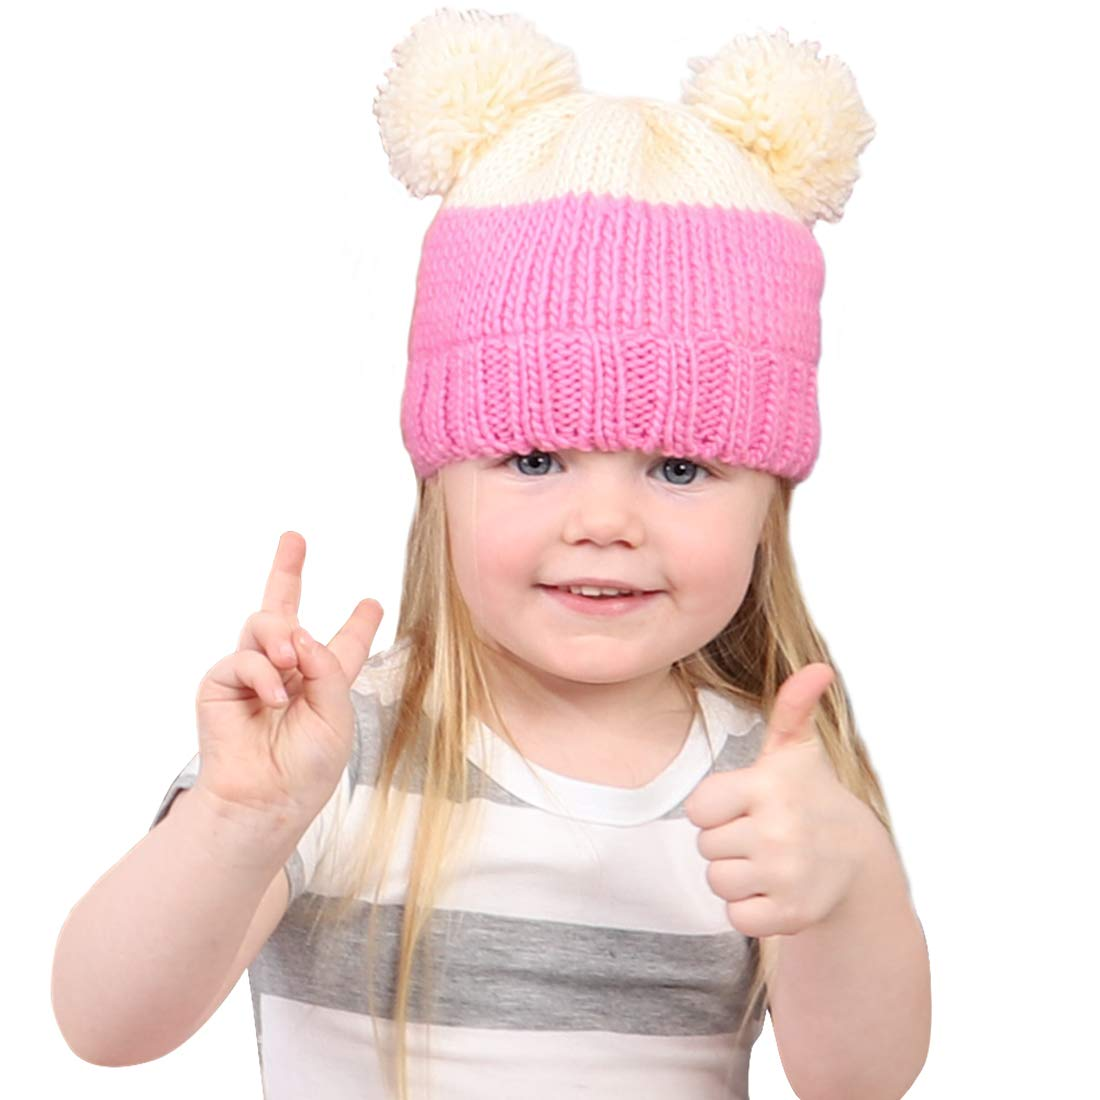 Klyersin Baby Beanie Hat Winter Spring Warm Pom Pom Cap Bear-Like Cute Soft Thick Knit for Toddler Kids